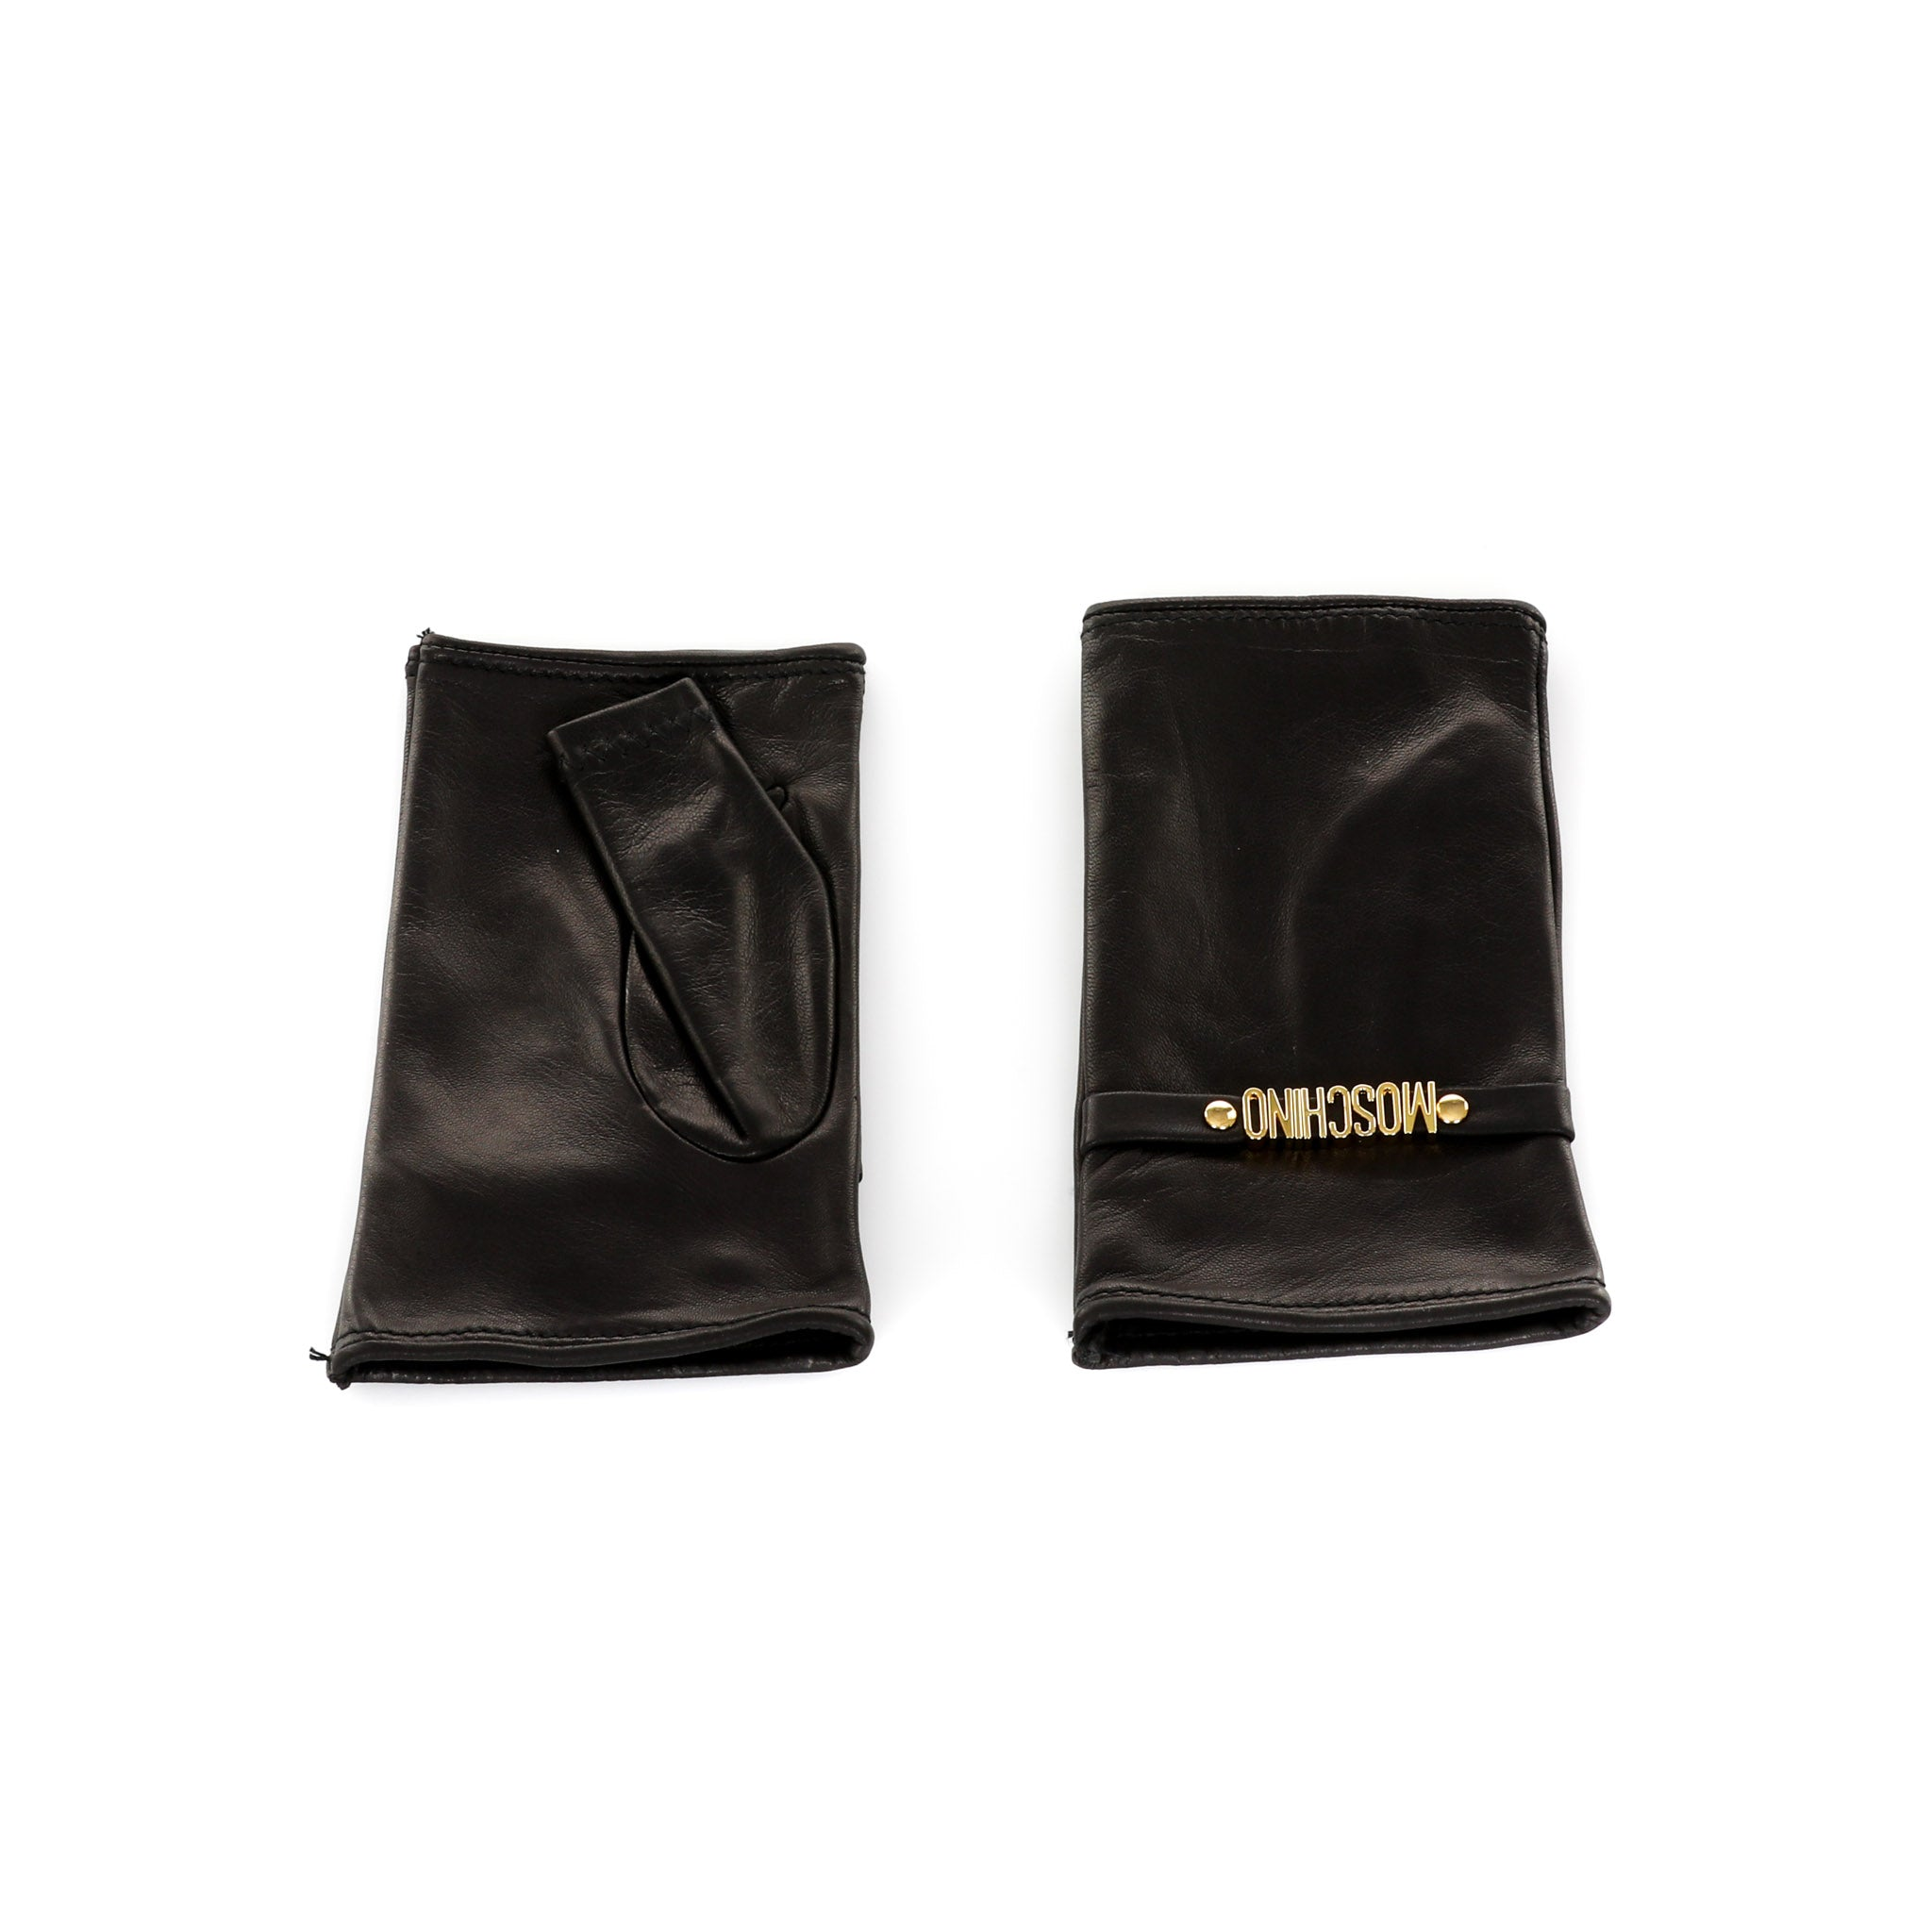 Moschino Leather Fingerless Gloves-MOSCHINO-SHOPATVOI.COM - Luxury Fashion Designer